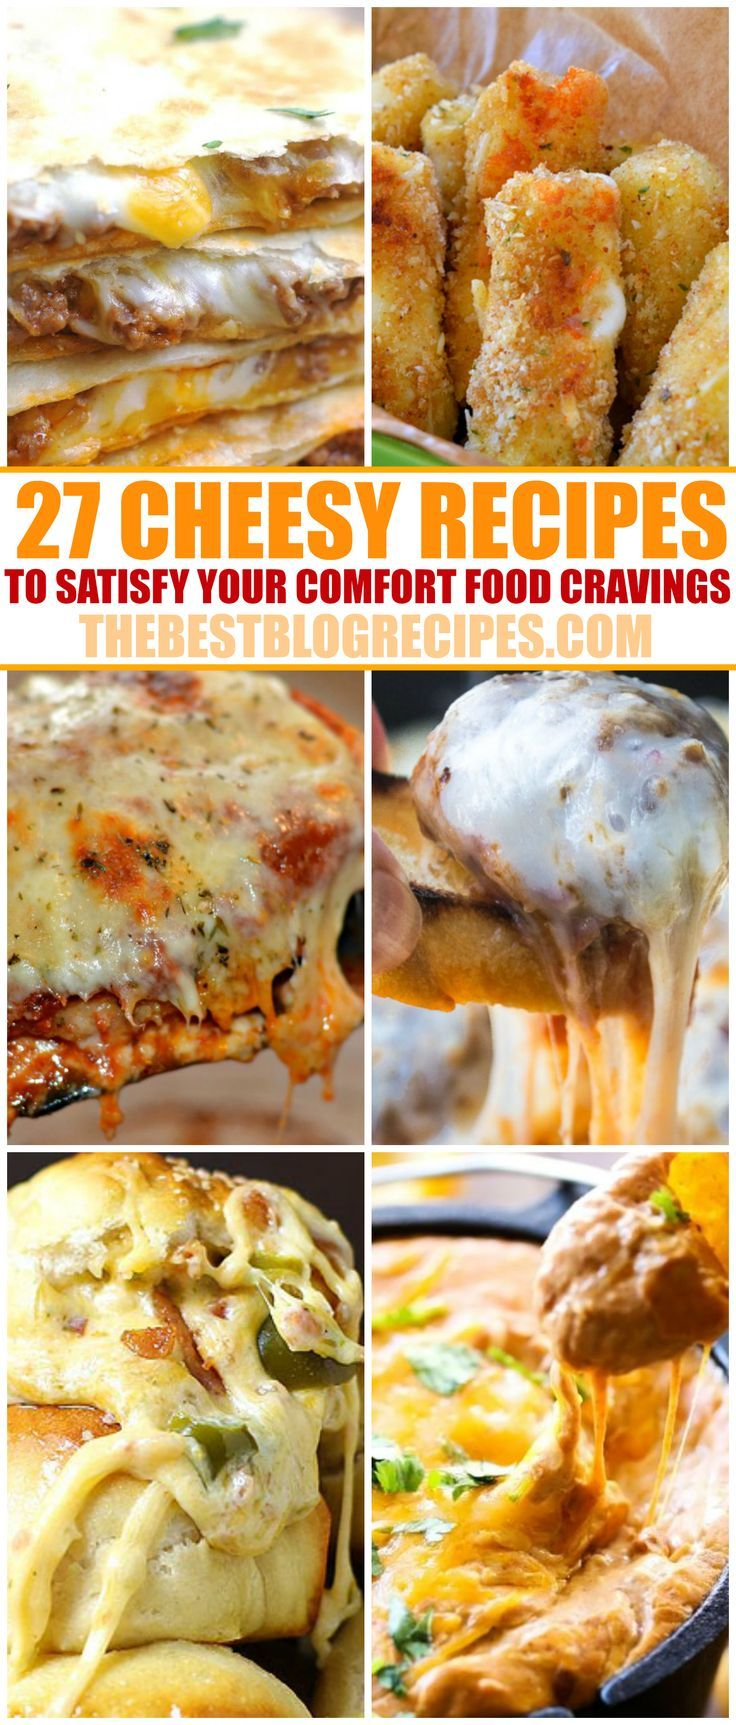 Calling all cheese lovers! We've rounded up some of our favorite cheesy recipes that will satisfy your biggest comfort food cravings. Mozzarella, ricotta, cheddar and more delicious cheeses make these recipes the ultimate meals!